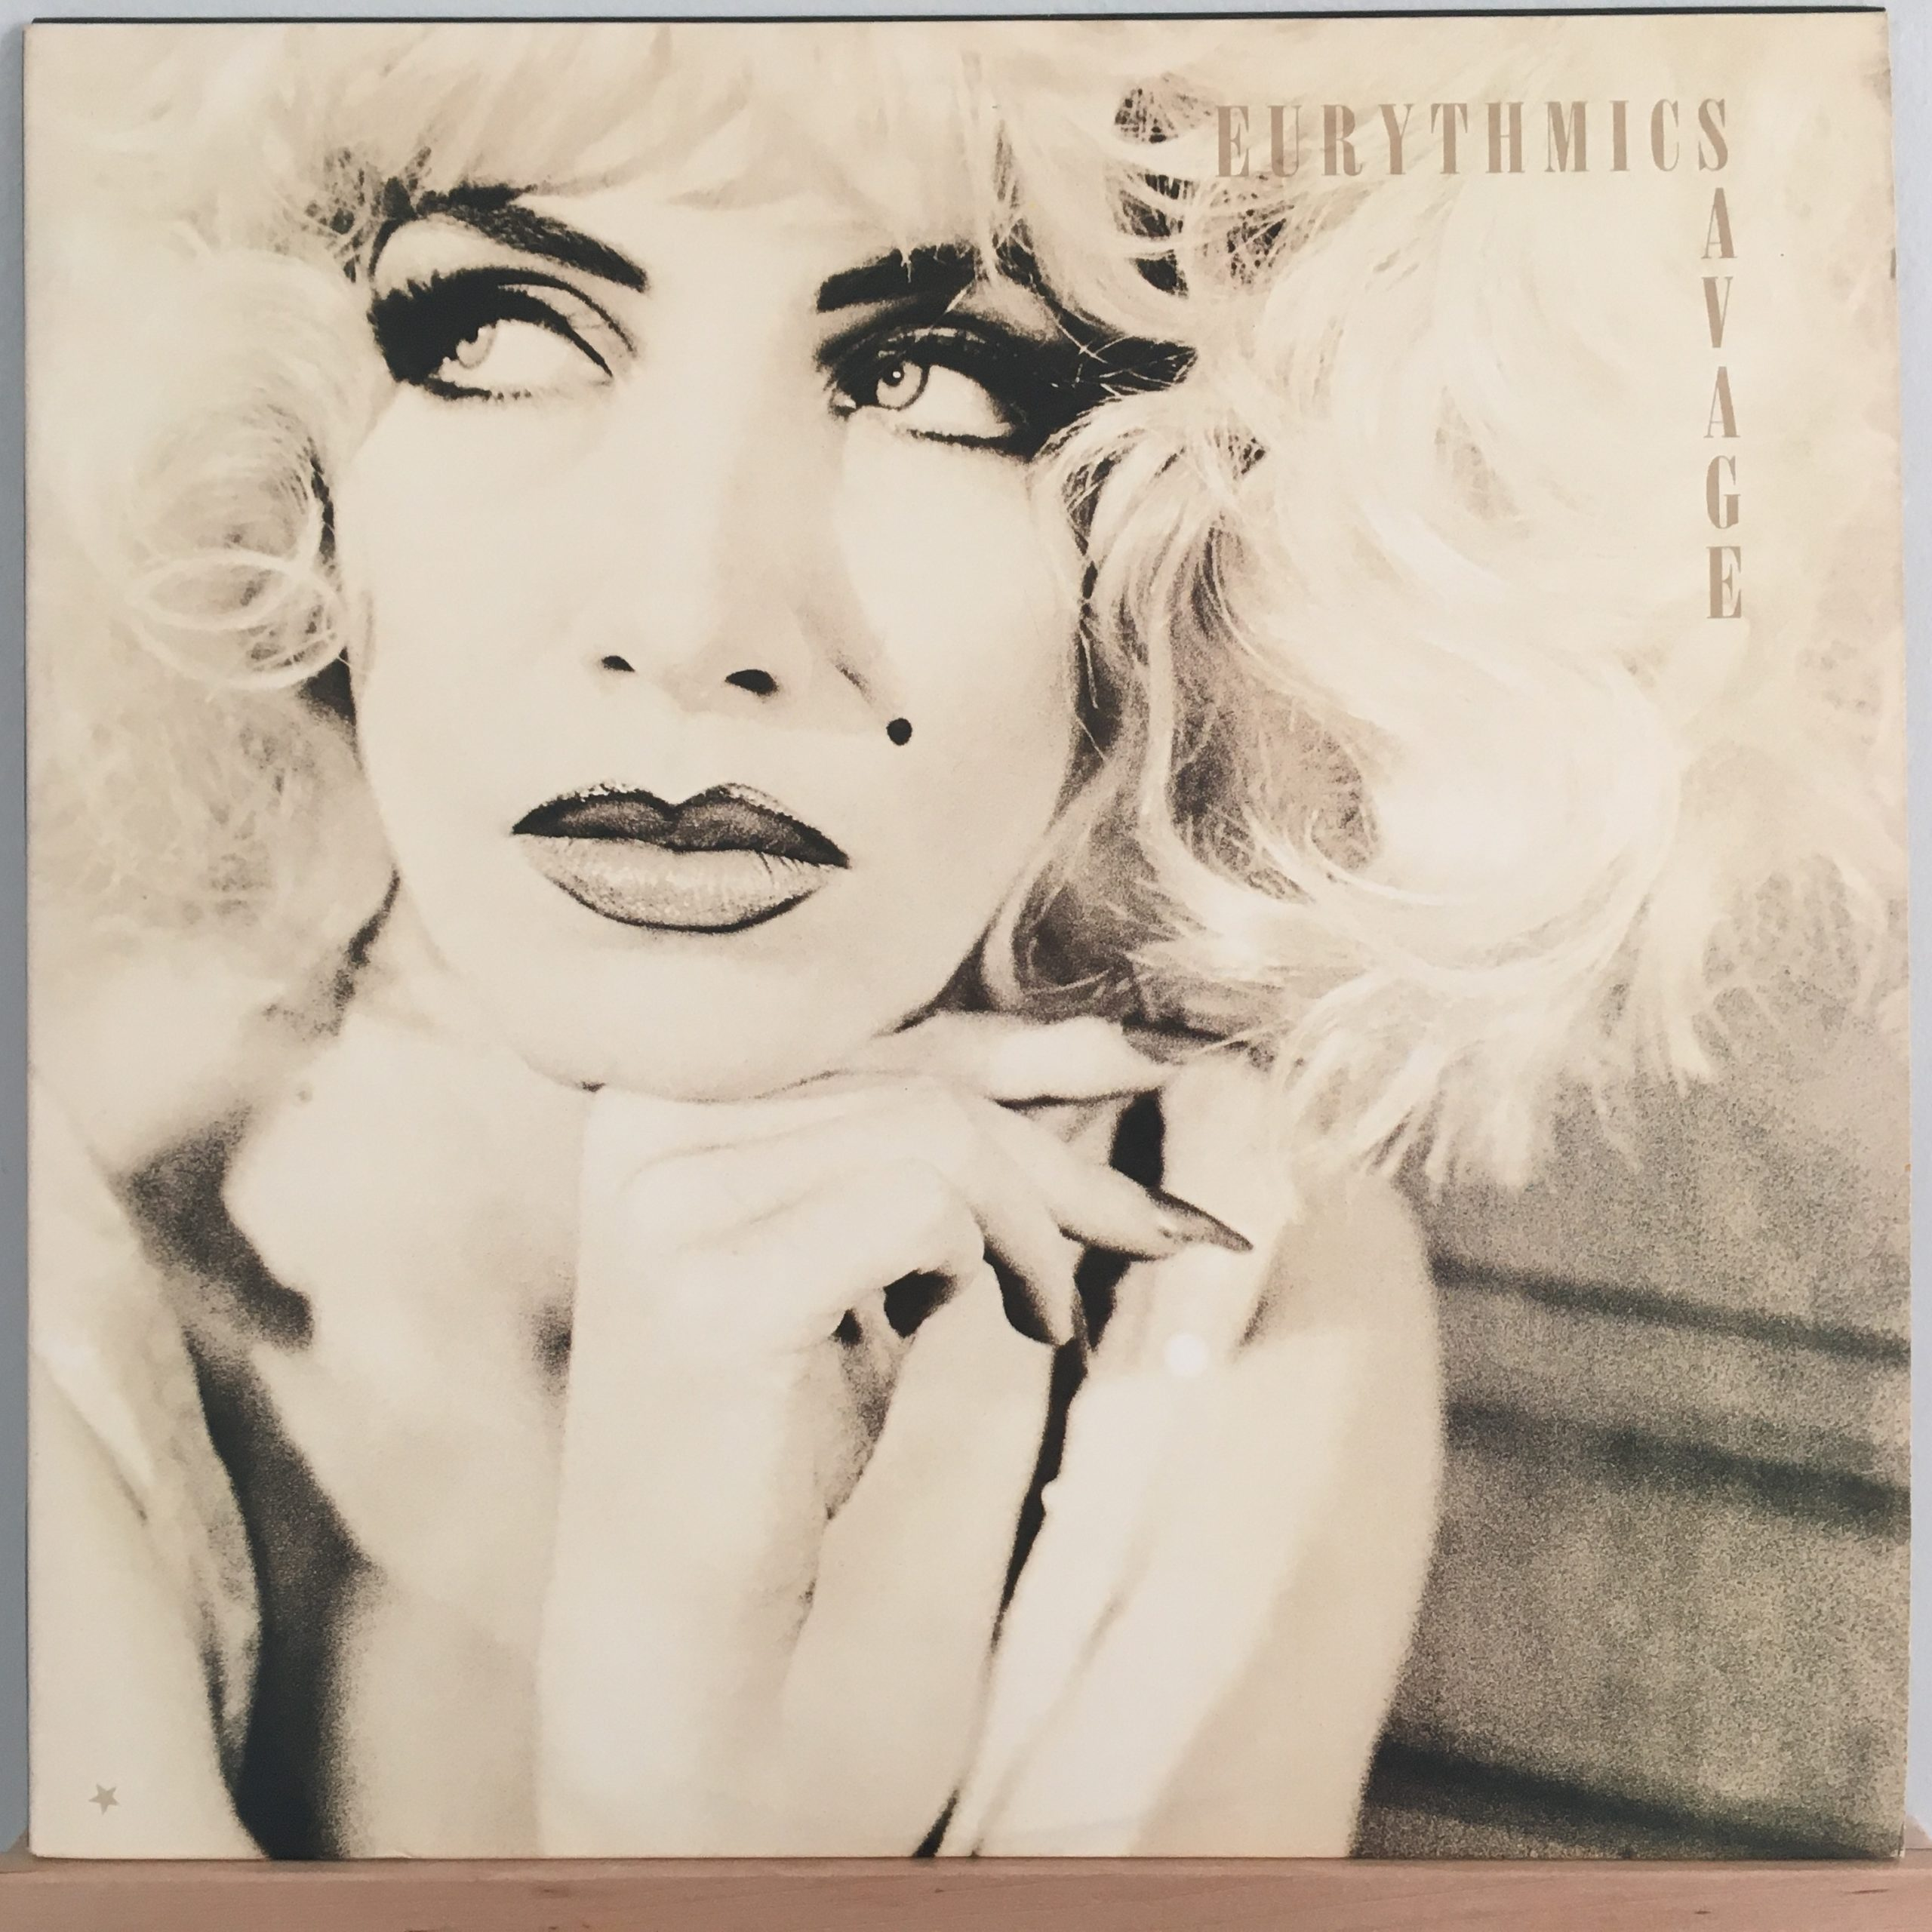 Eurythmics Savage front cover